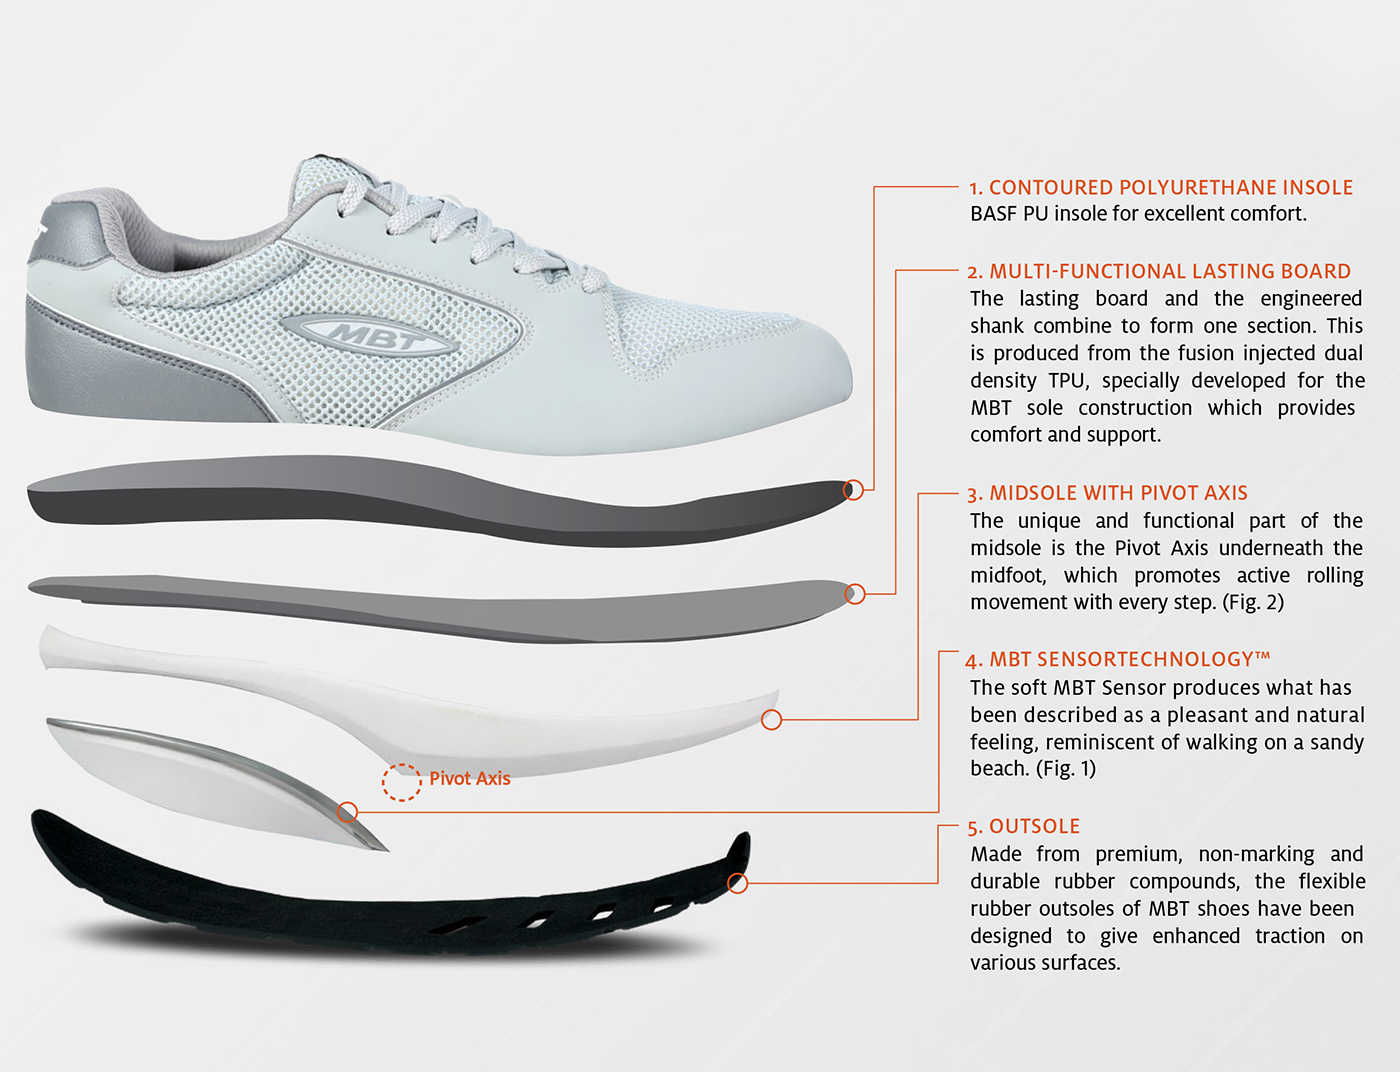 5 Parts of the MBT Curved Sole